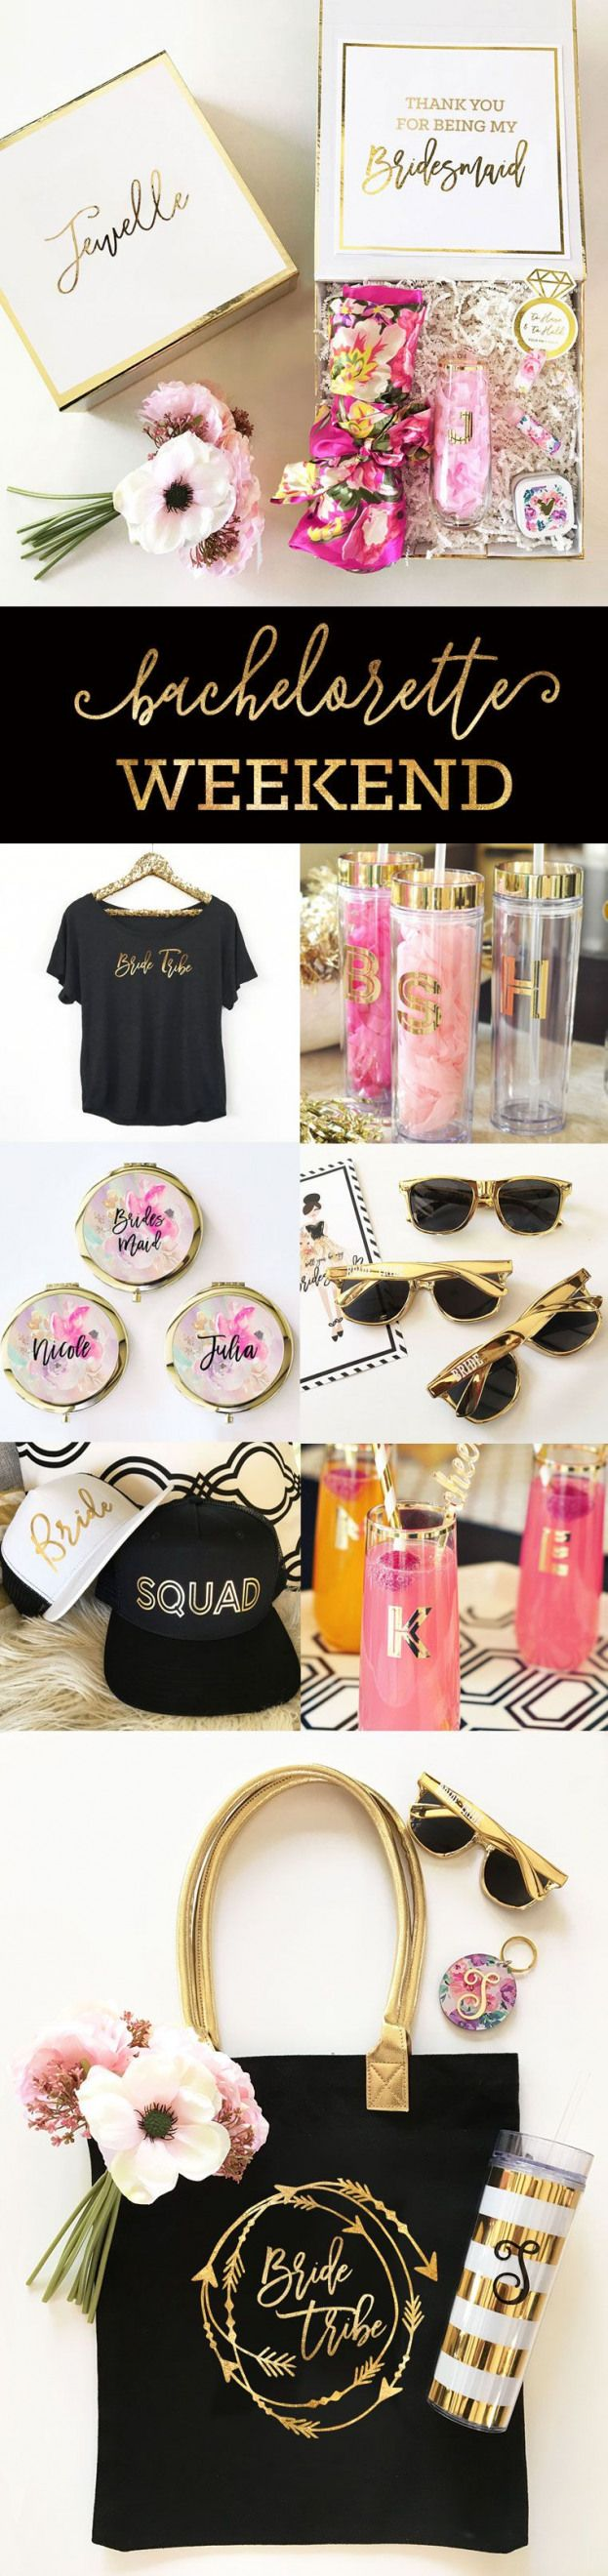 Bachelorette Party Ideas for a Weekend Getaway - Bridesmaid Gifts | Bride Tribe Shirts | Bachelorette Hats | Bride Tribe Sunglasses | by Weddingfavorites #bacheloretteparty #classy #bachelorette #party